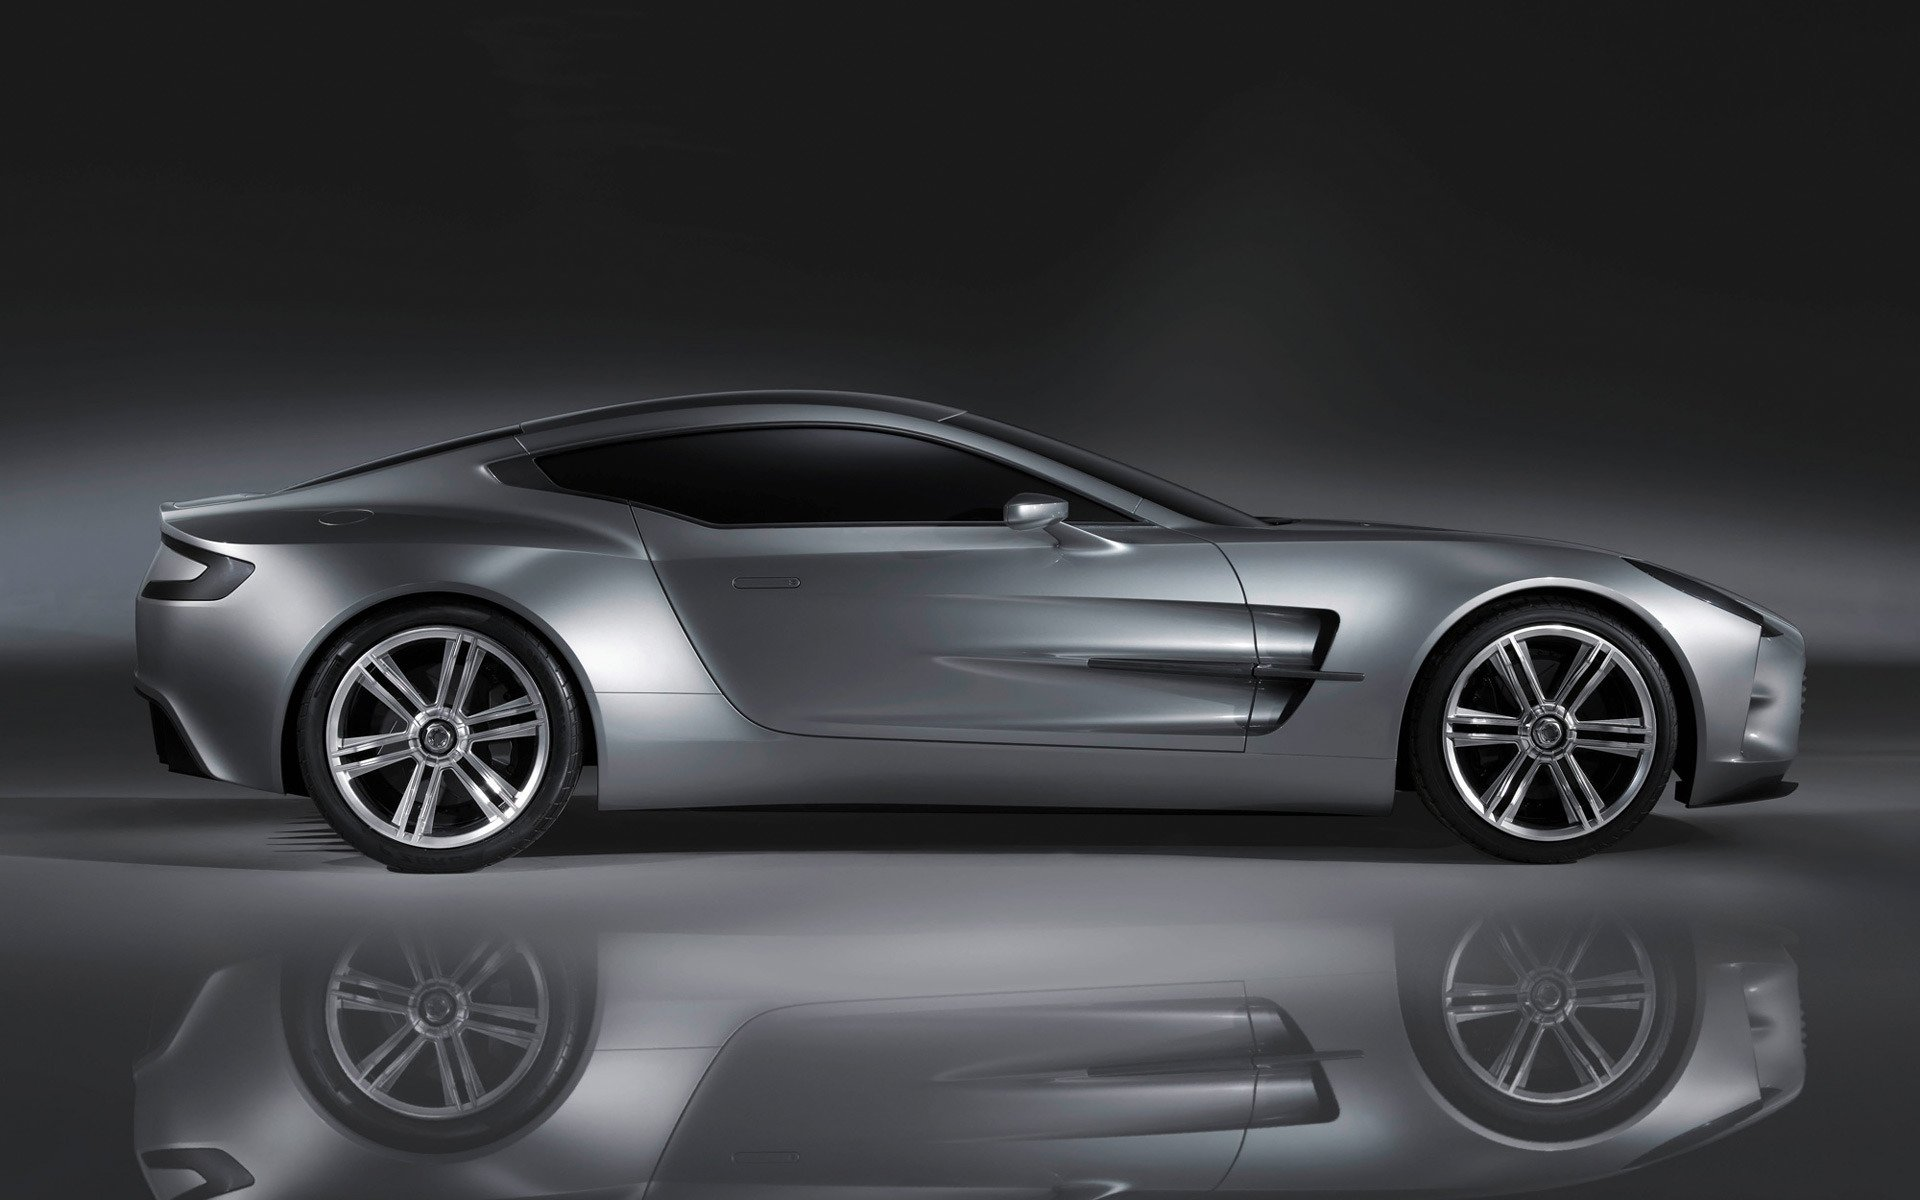 Aston Martin One 77 1920 wallpaper downloads High resolution 1920x1200